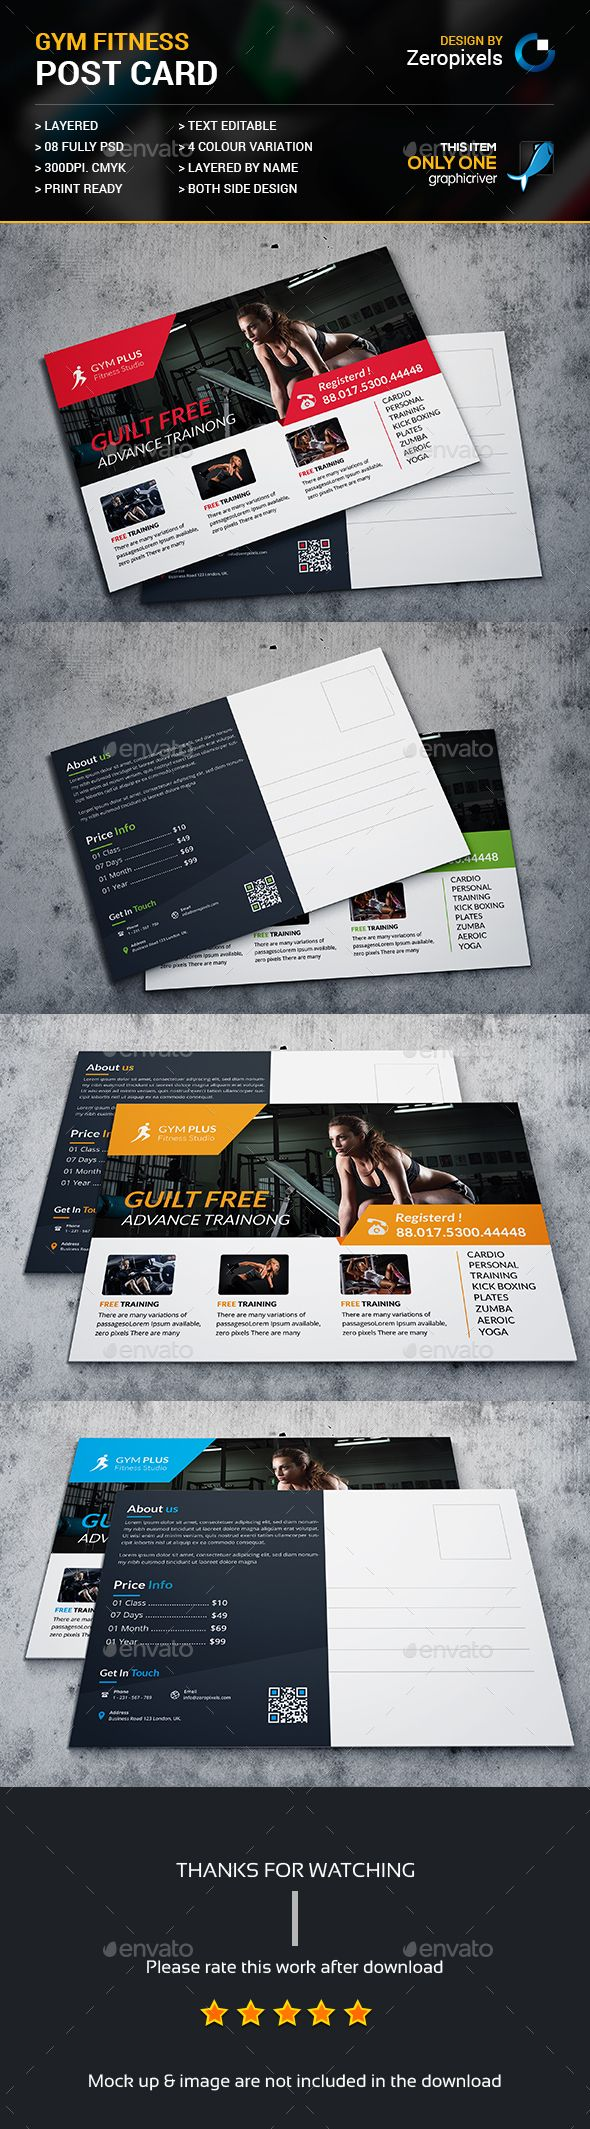 Gym Fitness Post Card Template PSD. Download here: http://graphicriver.net/item/gym-fitness-post-card/15757885?ref=ksioks